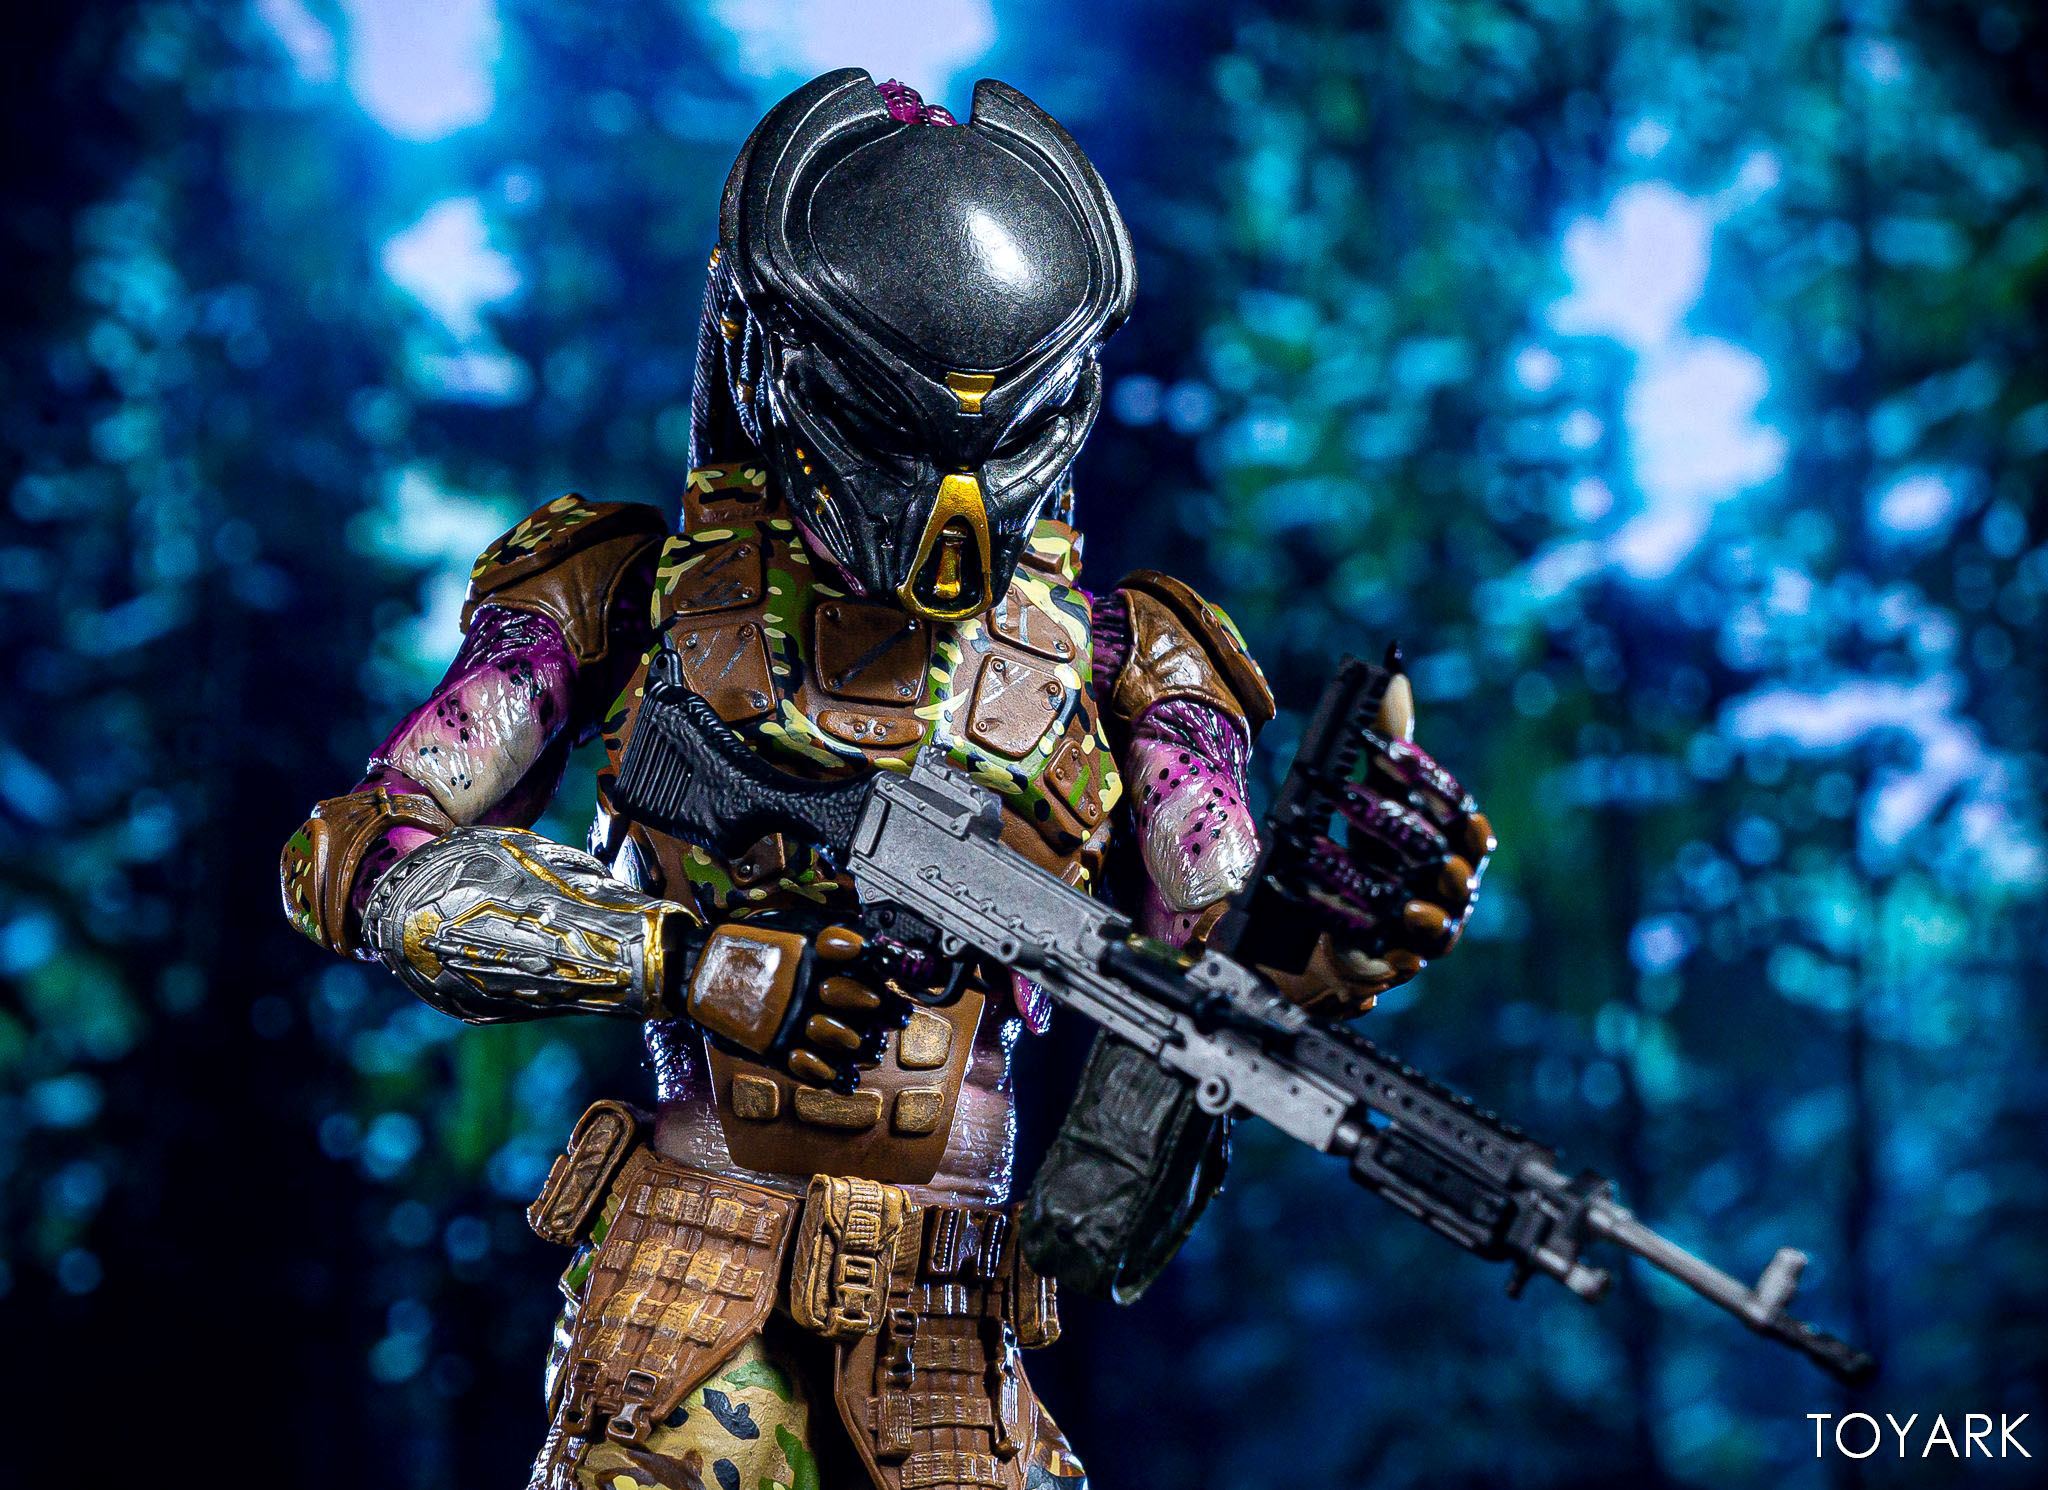 https://news.toyark.com/wp-content/uploads/sites/4/2019/05/Emissary-Predator-1-NECA-Figure-016.jpg